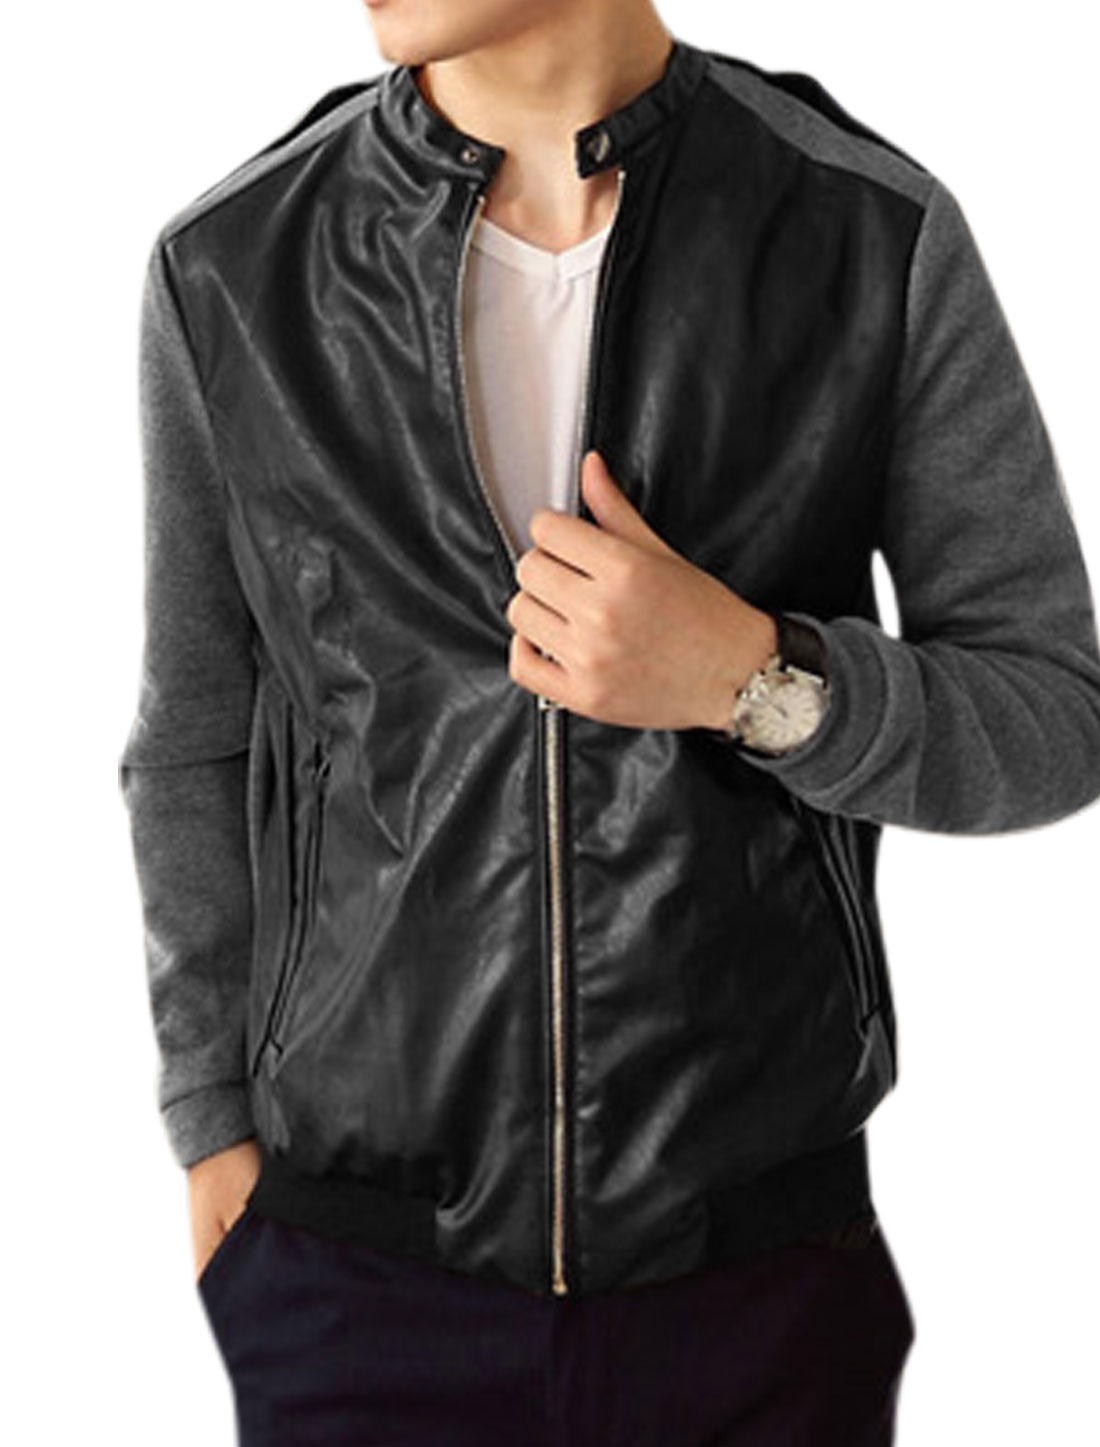 Men Stand Collar Zipper Closure Color Block Casual Jacket Black Gray M